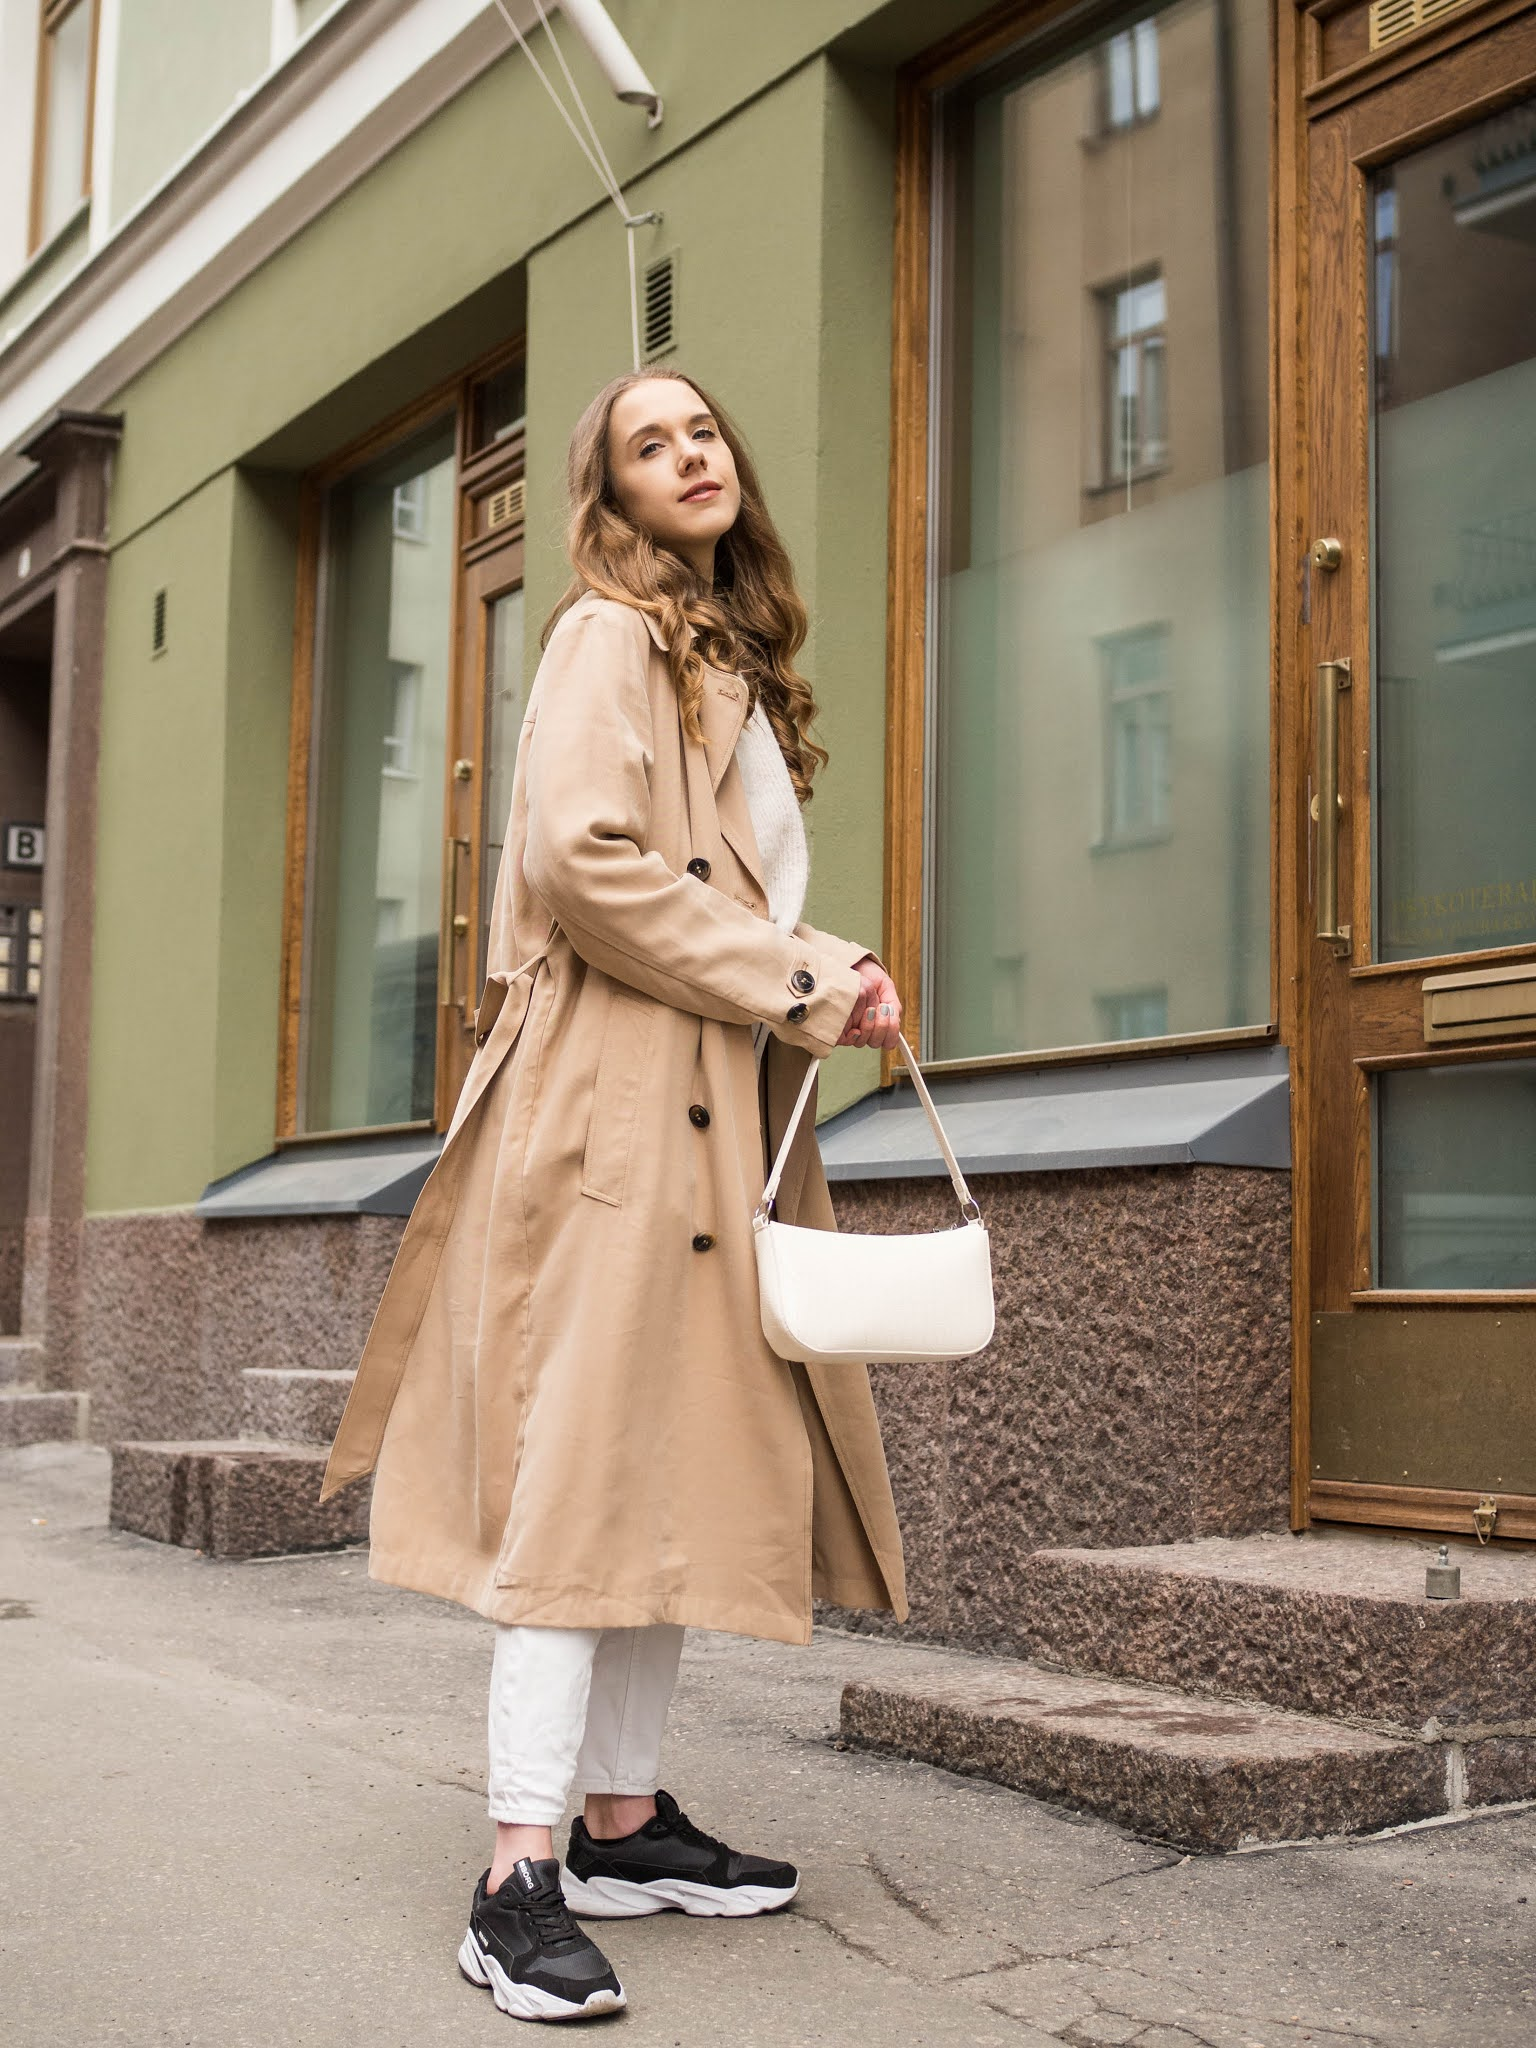 Kuinka stailata trenssi // How to style a trench coat